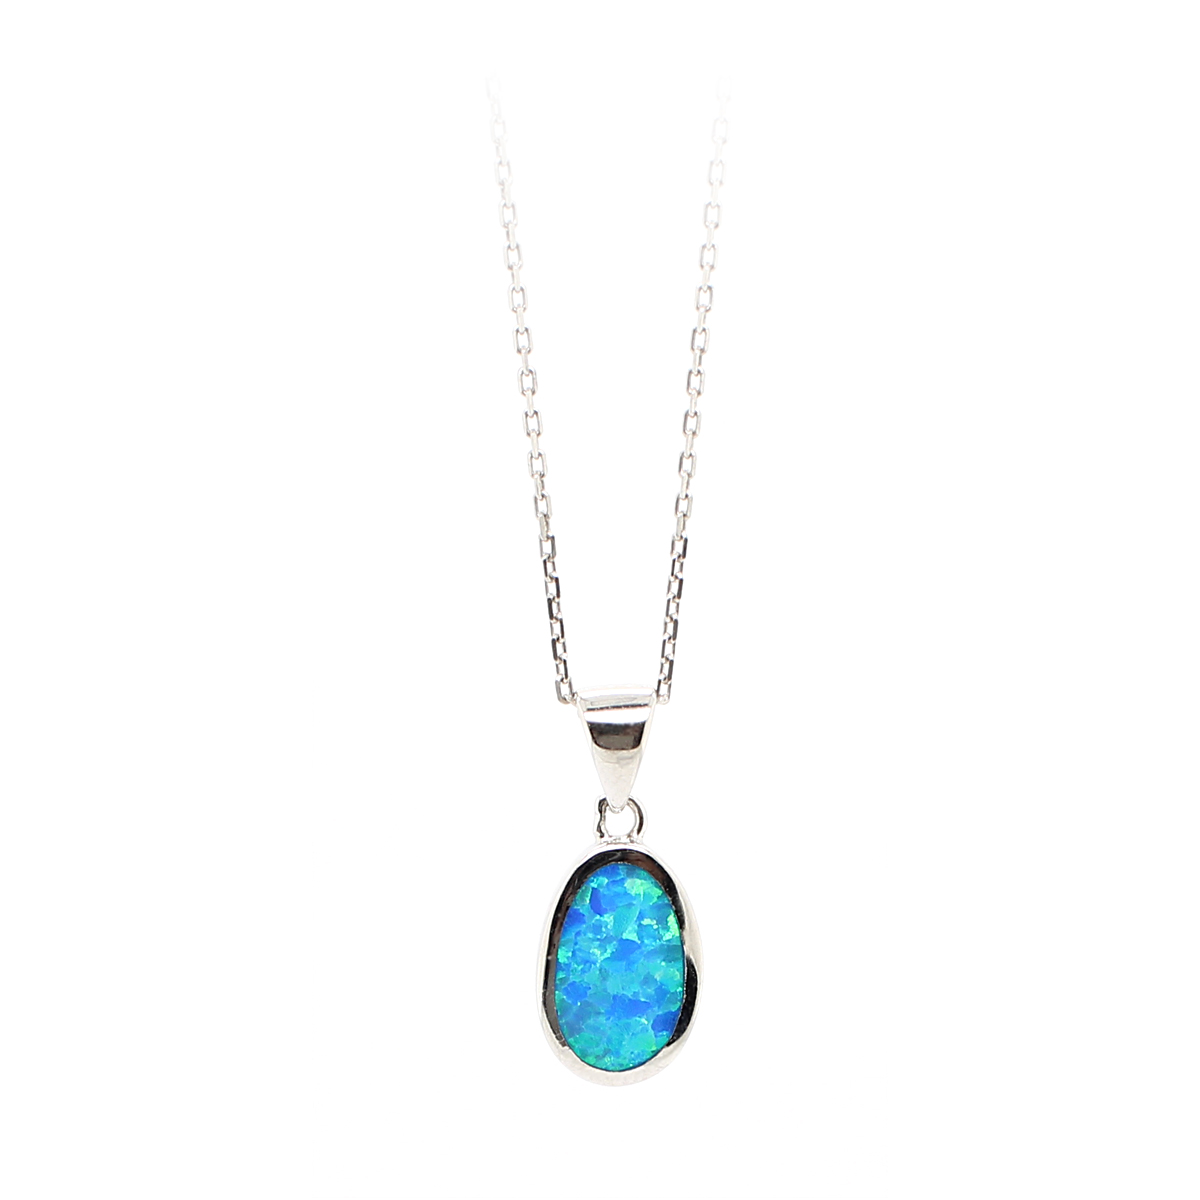 Royal Chain Sterling Silver Oval Blue Opal Pendant Necklace